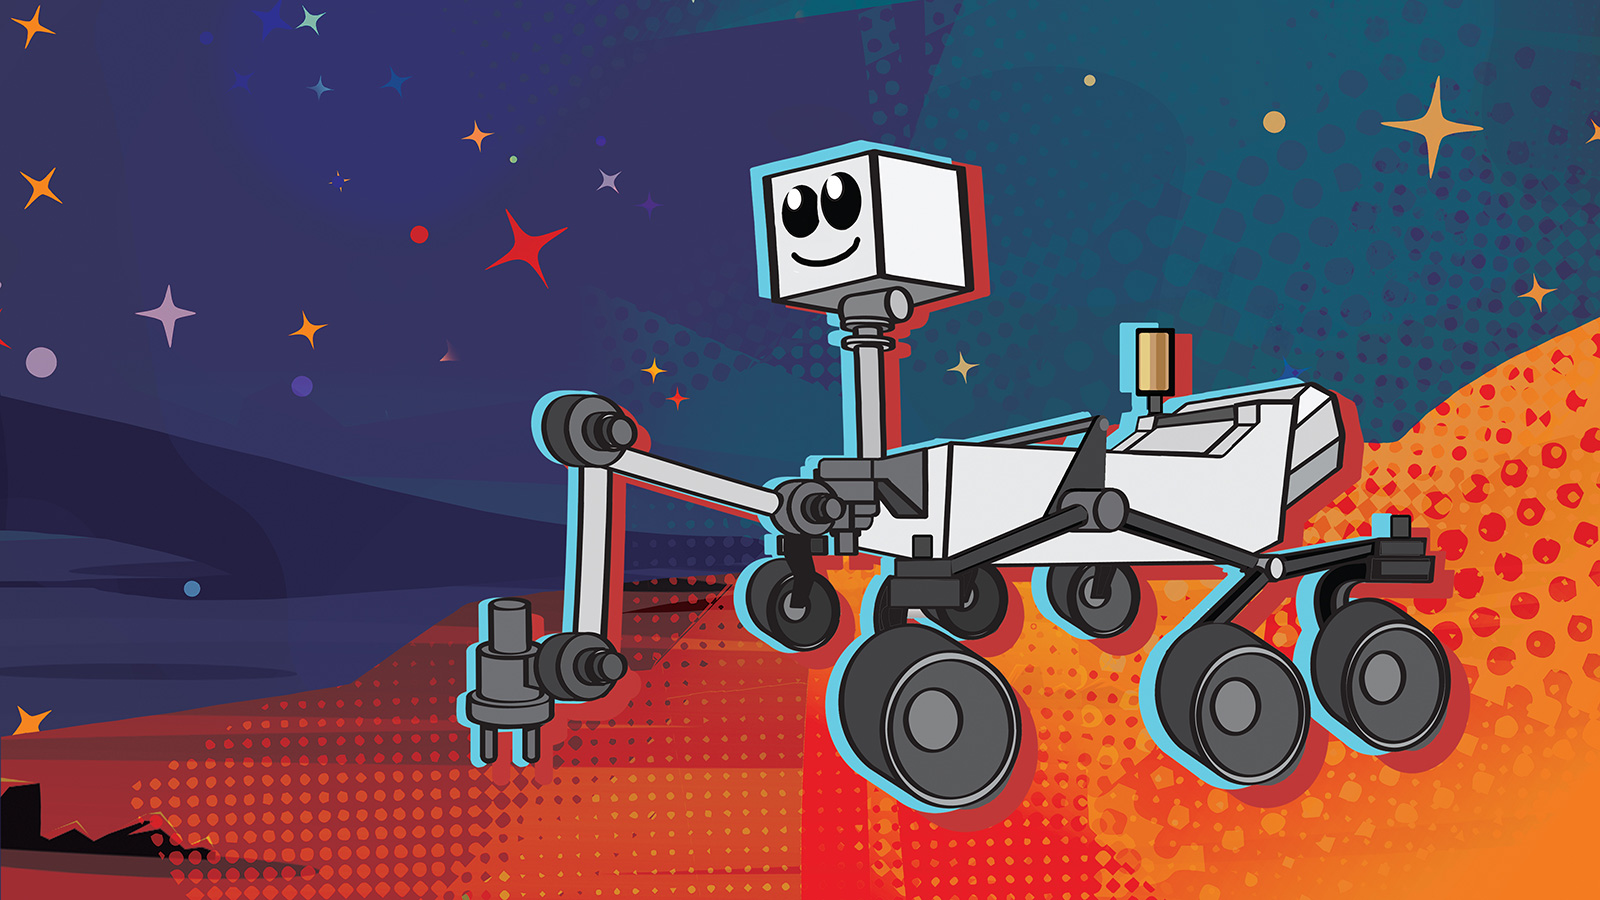 slide 1 - This illustration depicts NASA's next Mars rover, which launches in 2020.